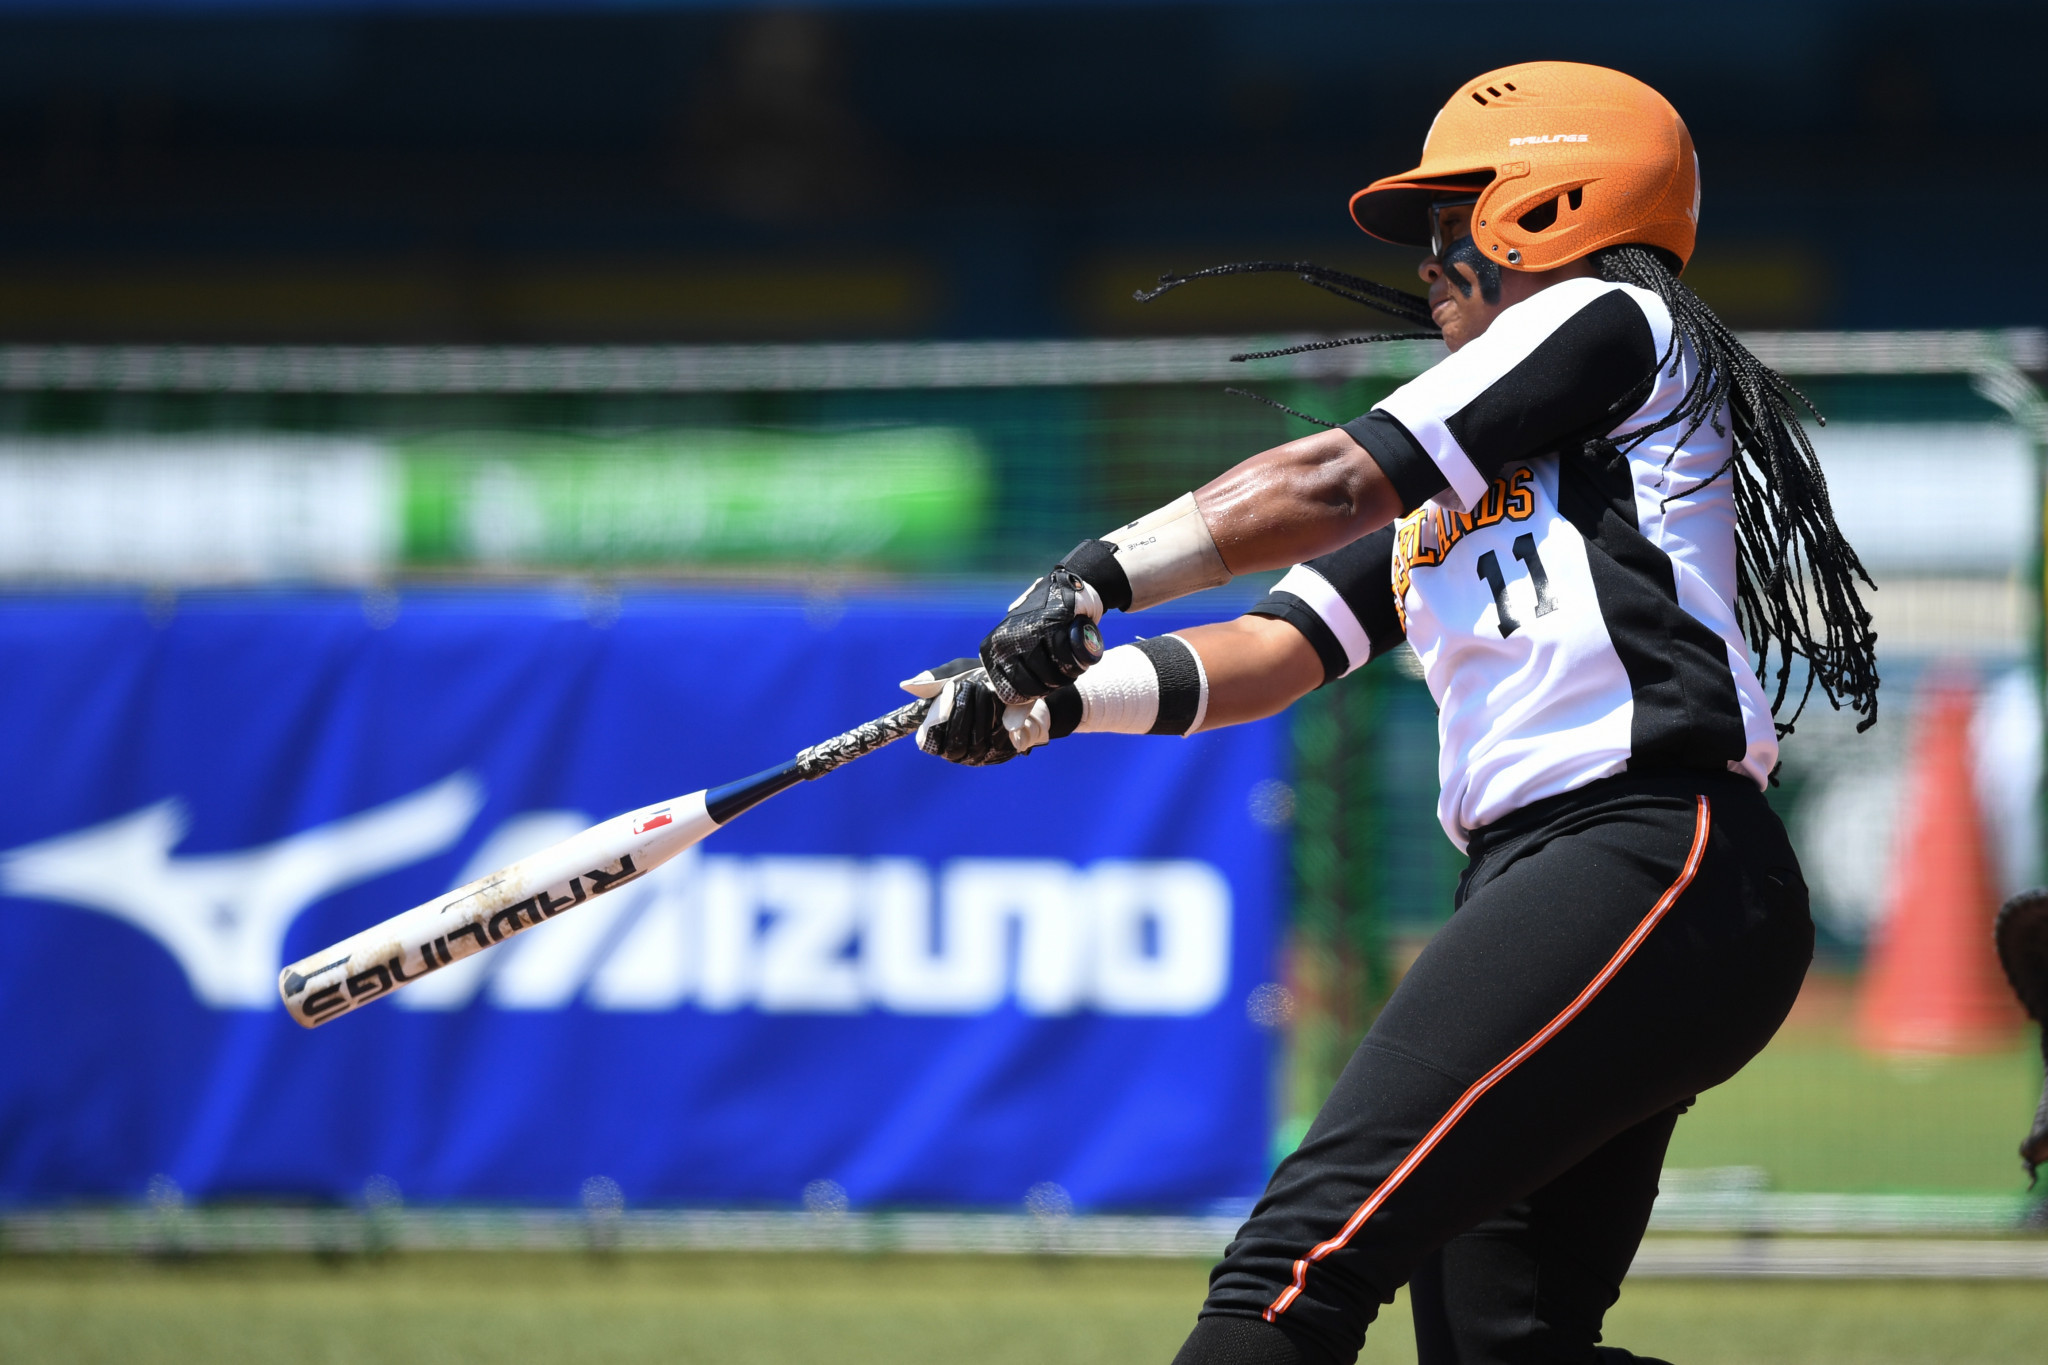 Schedule for 2019 Softball Women's European Championship released